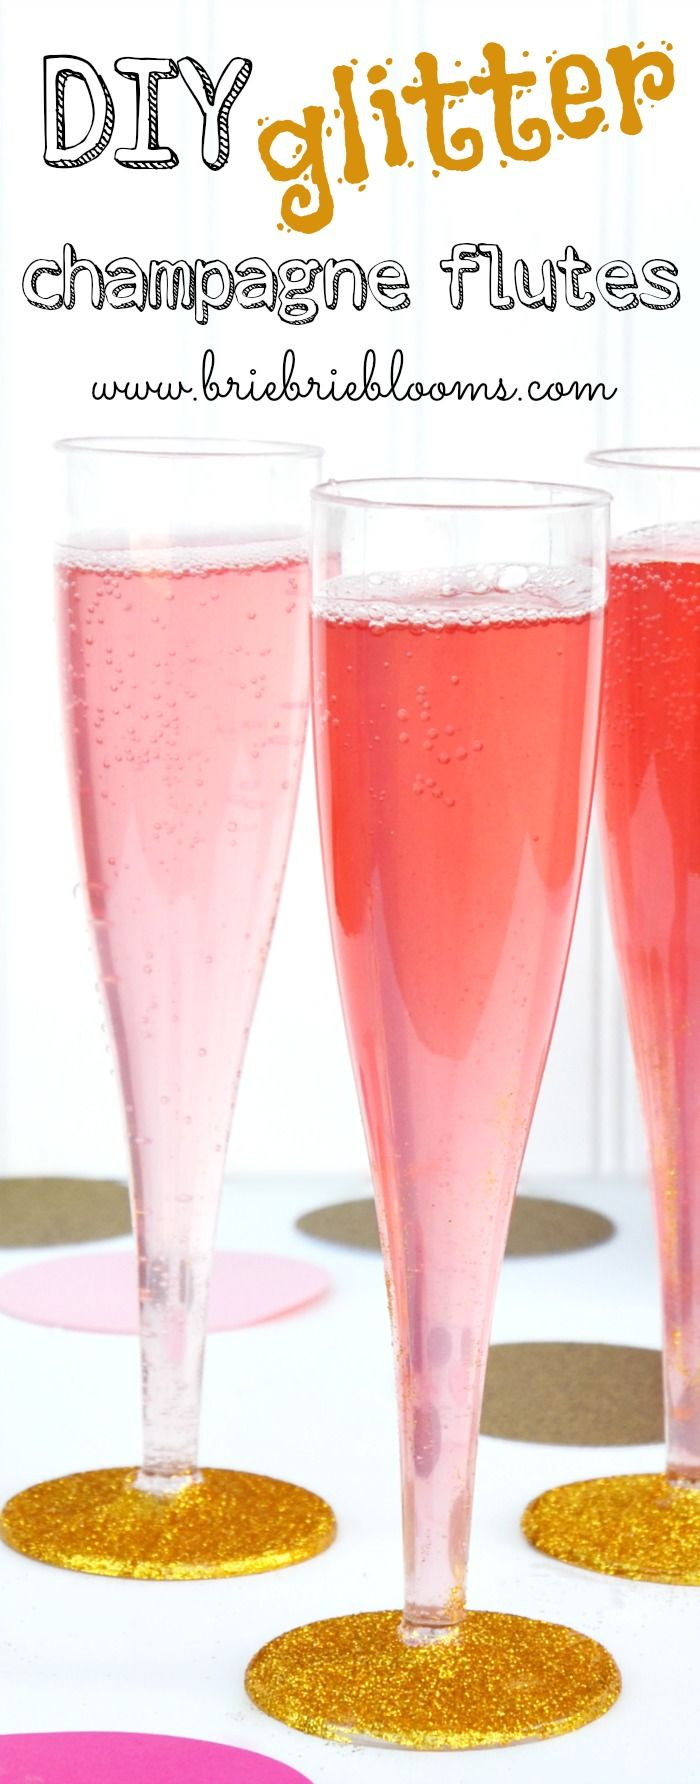 Turn plastic champagne flutes into something sparkly for your next party with this easy DIY glitter champagne flutes tutorial.